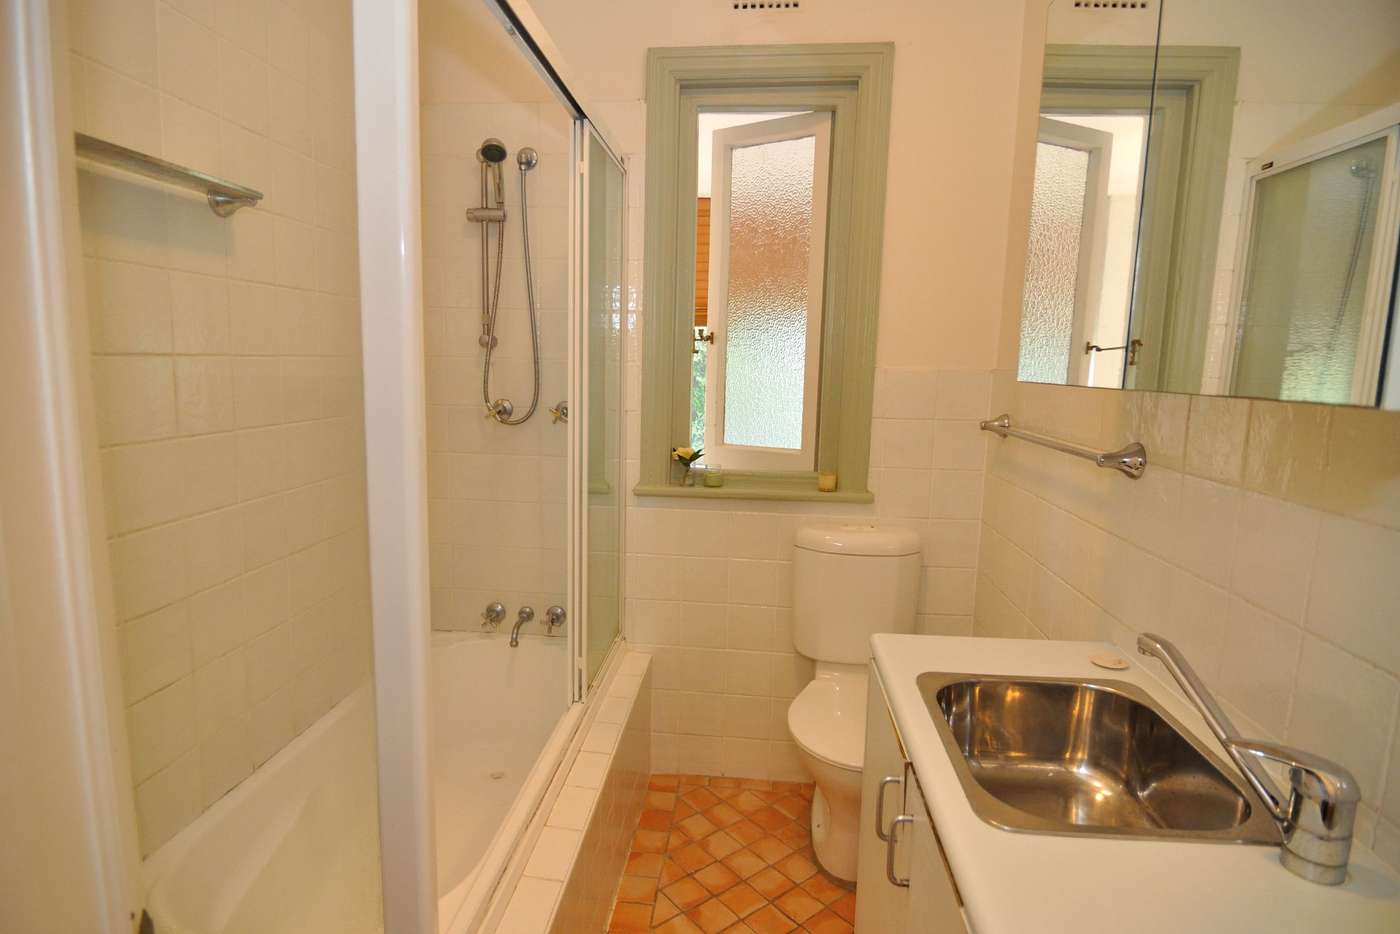 Sixth view of Homely apartment listing, 7/26 Chester Street, Petersham NSW 2049